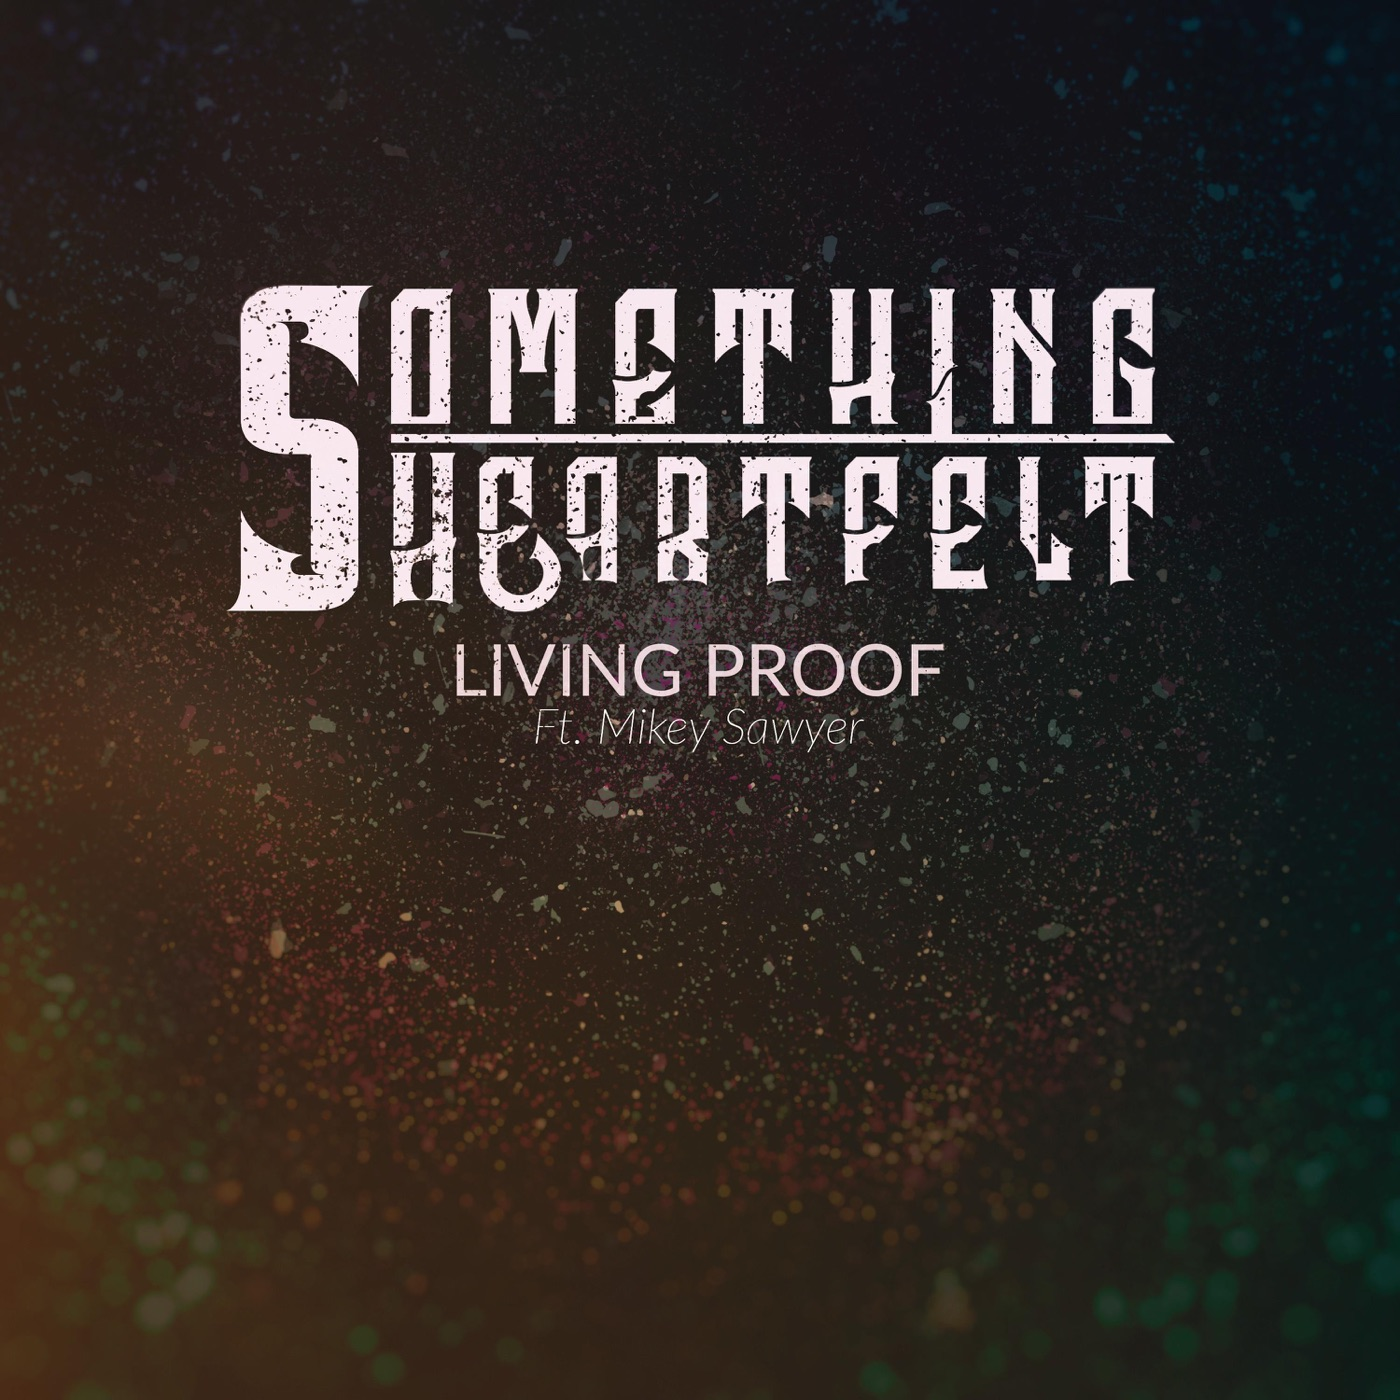 Something Heartfelt - Living Proof [single] (2017)